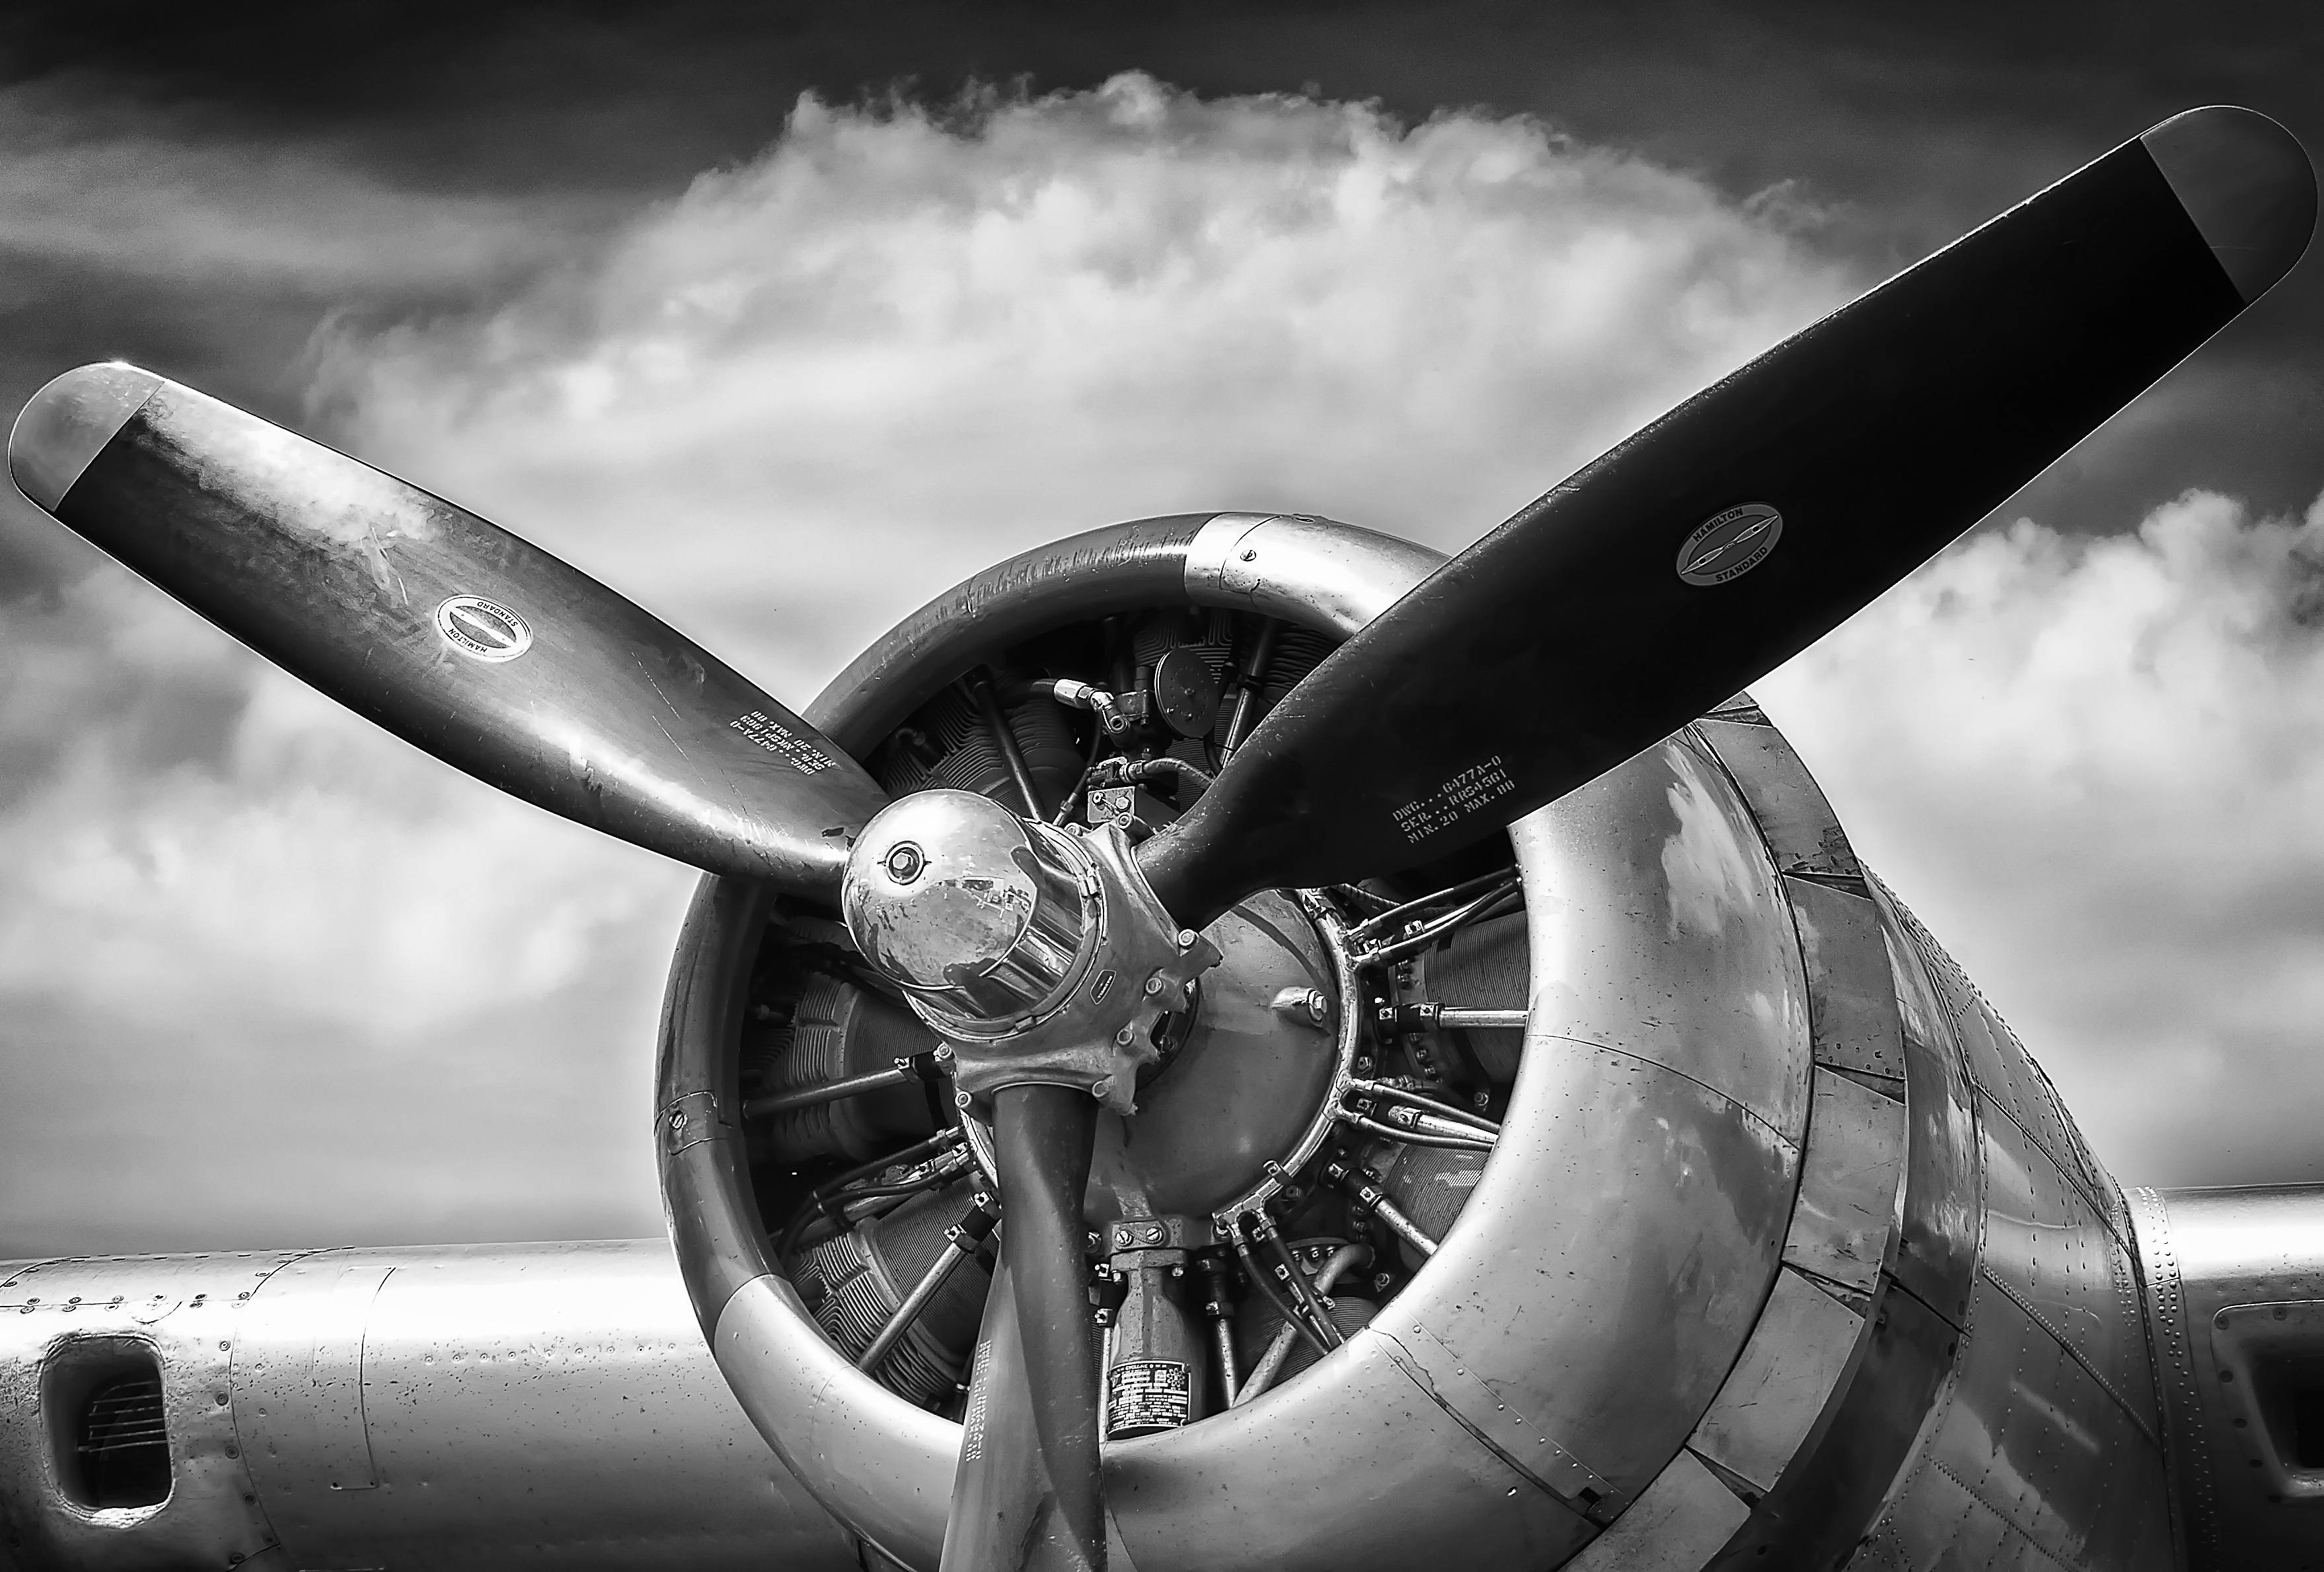 Download Ww2 Airplane Wallpaper Gallery